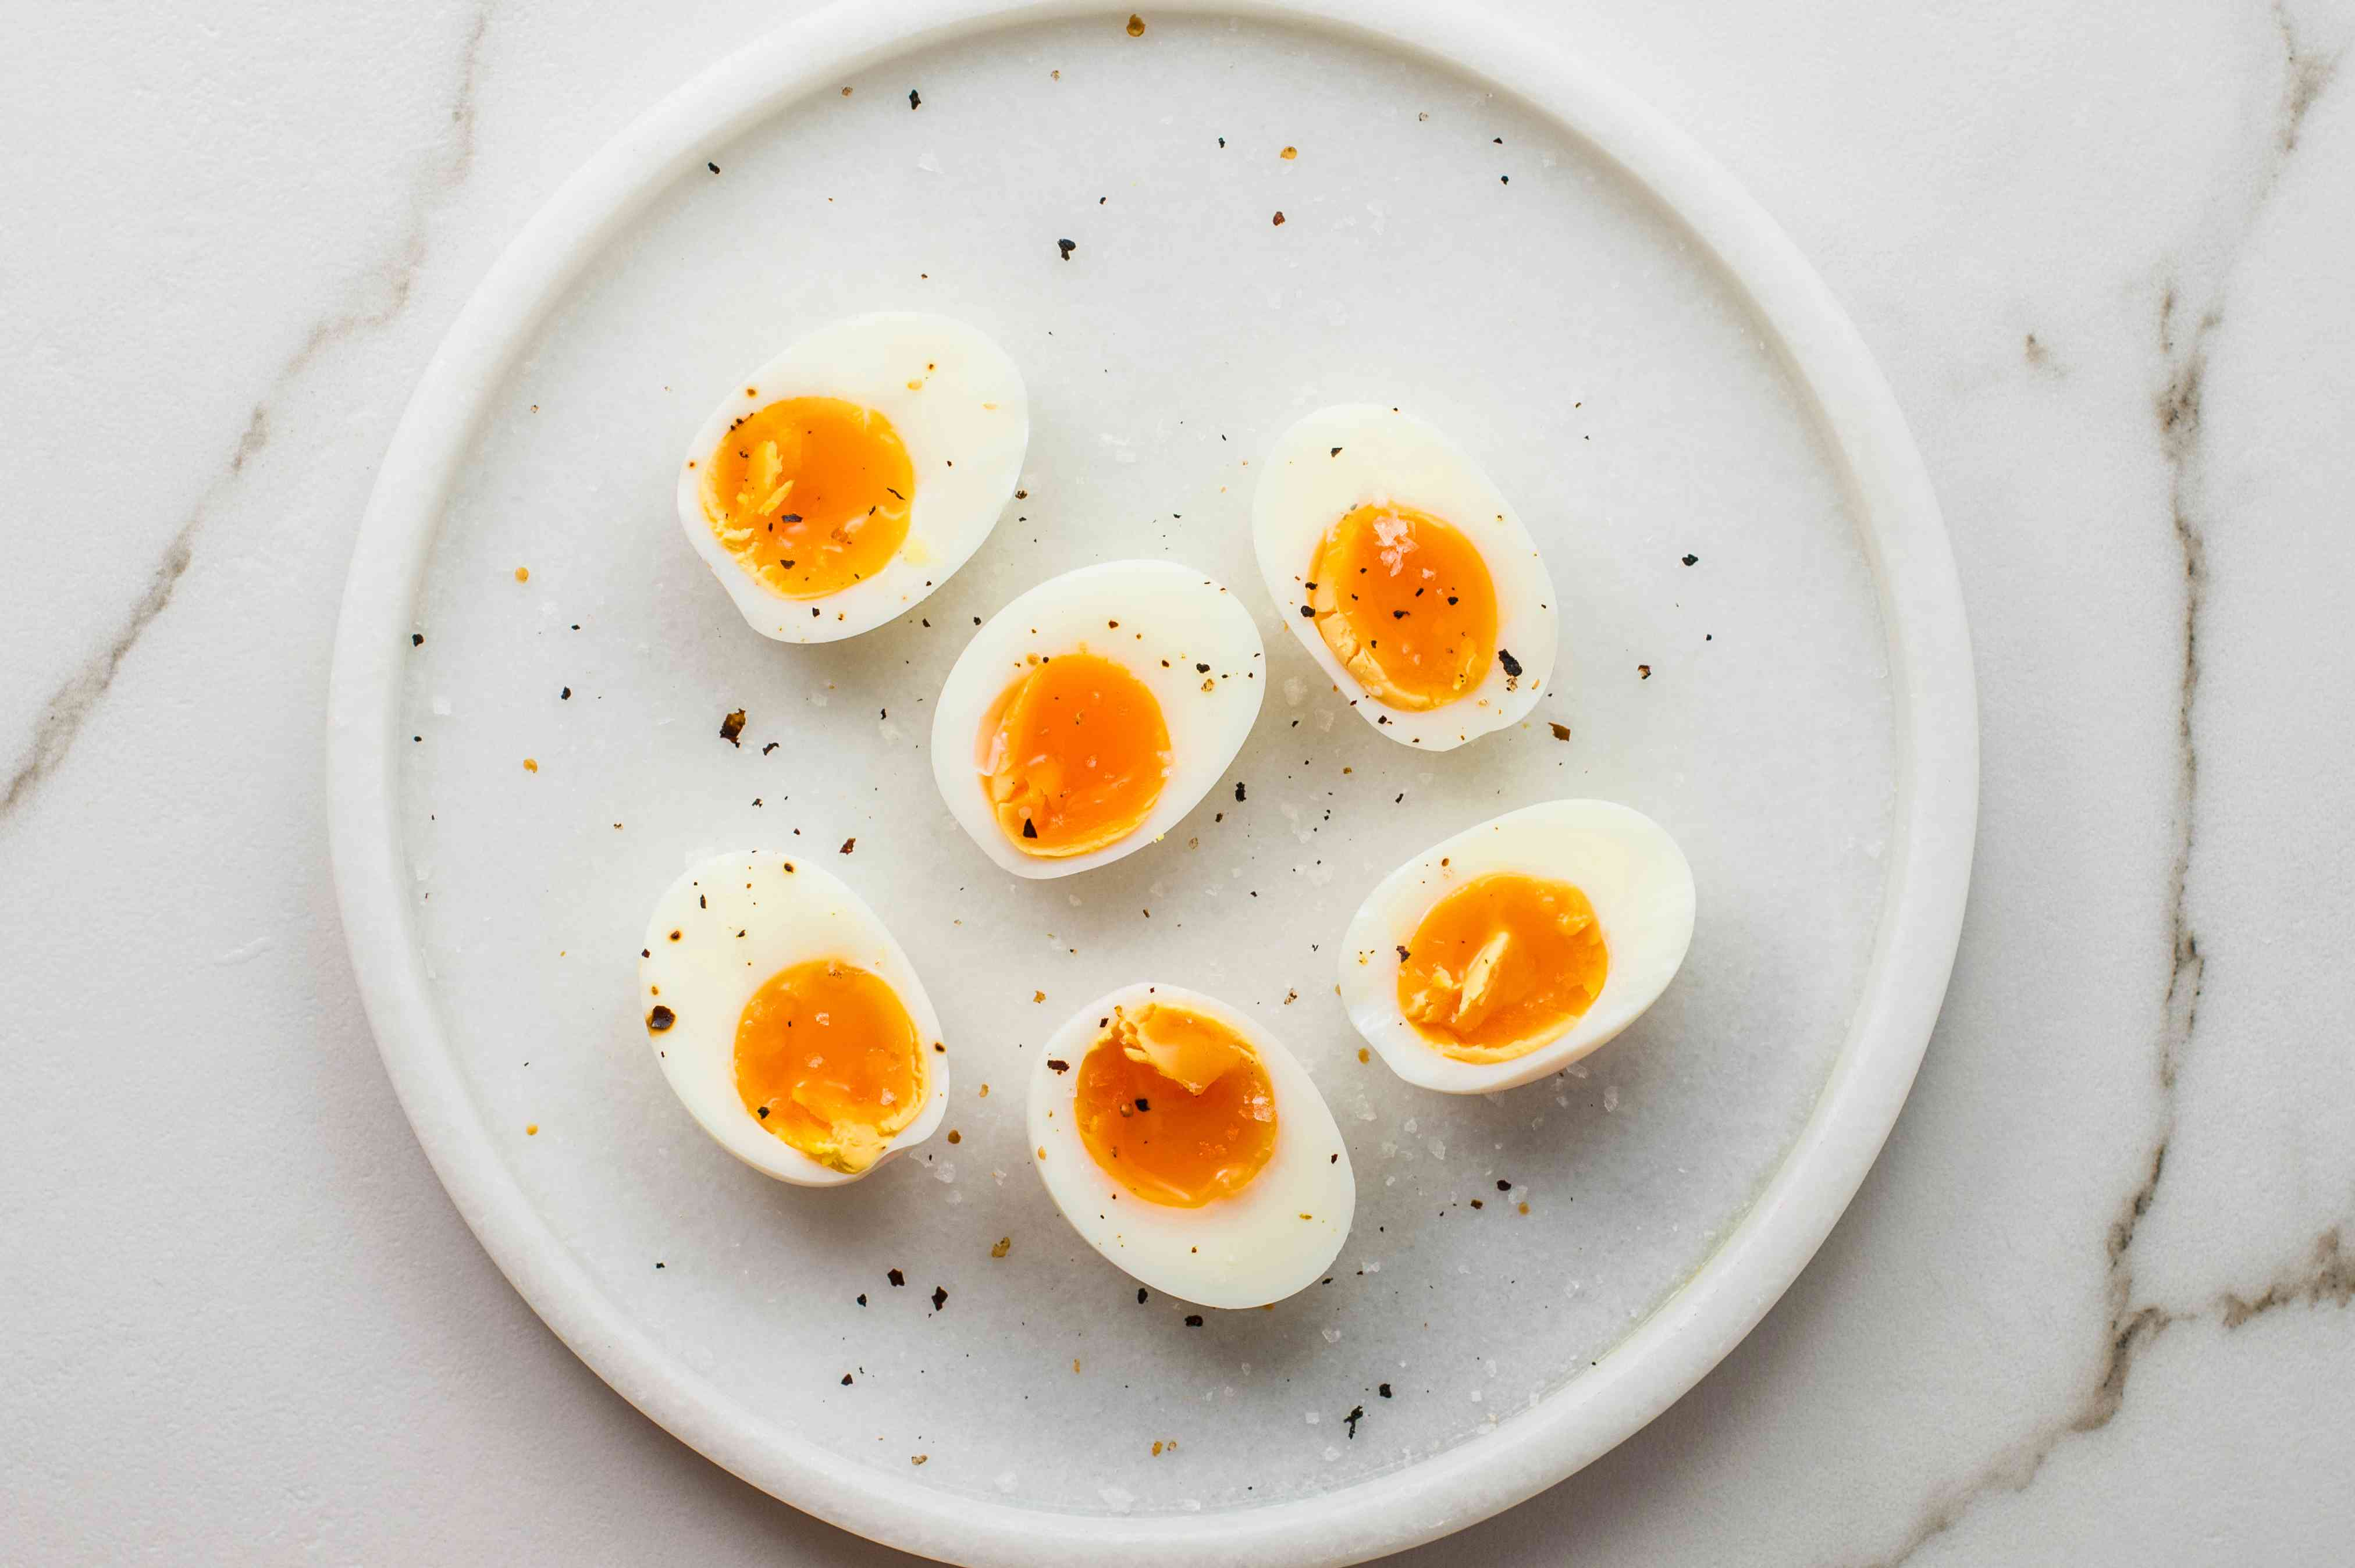 How to make perfect 7-minute eggs